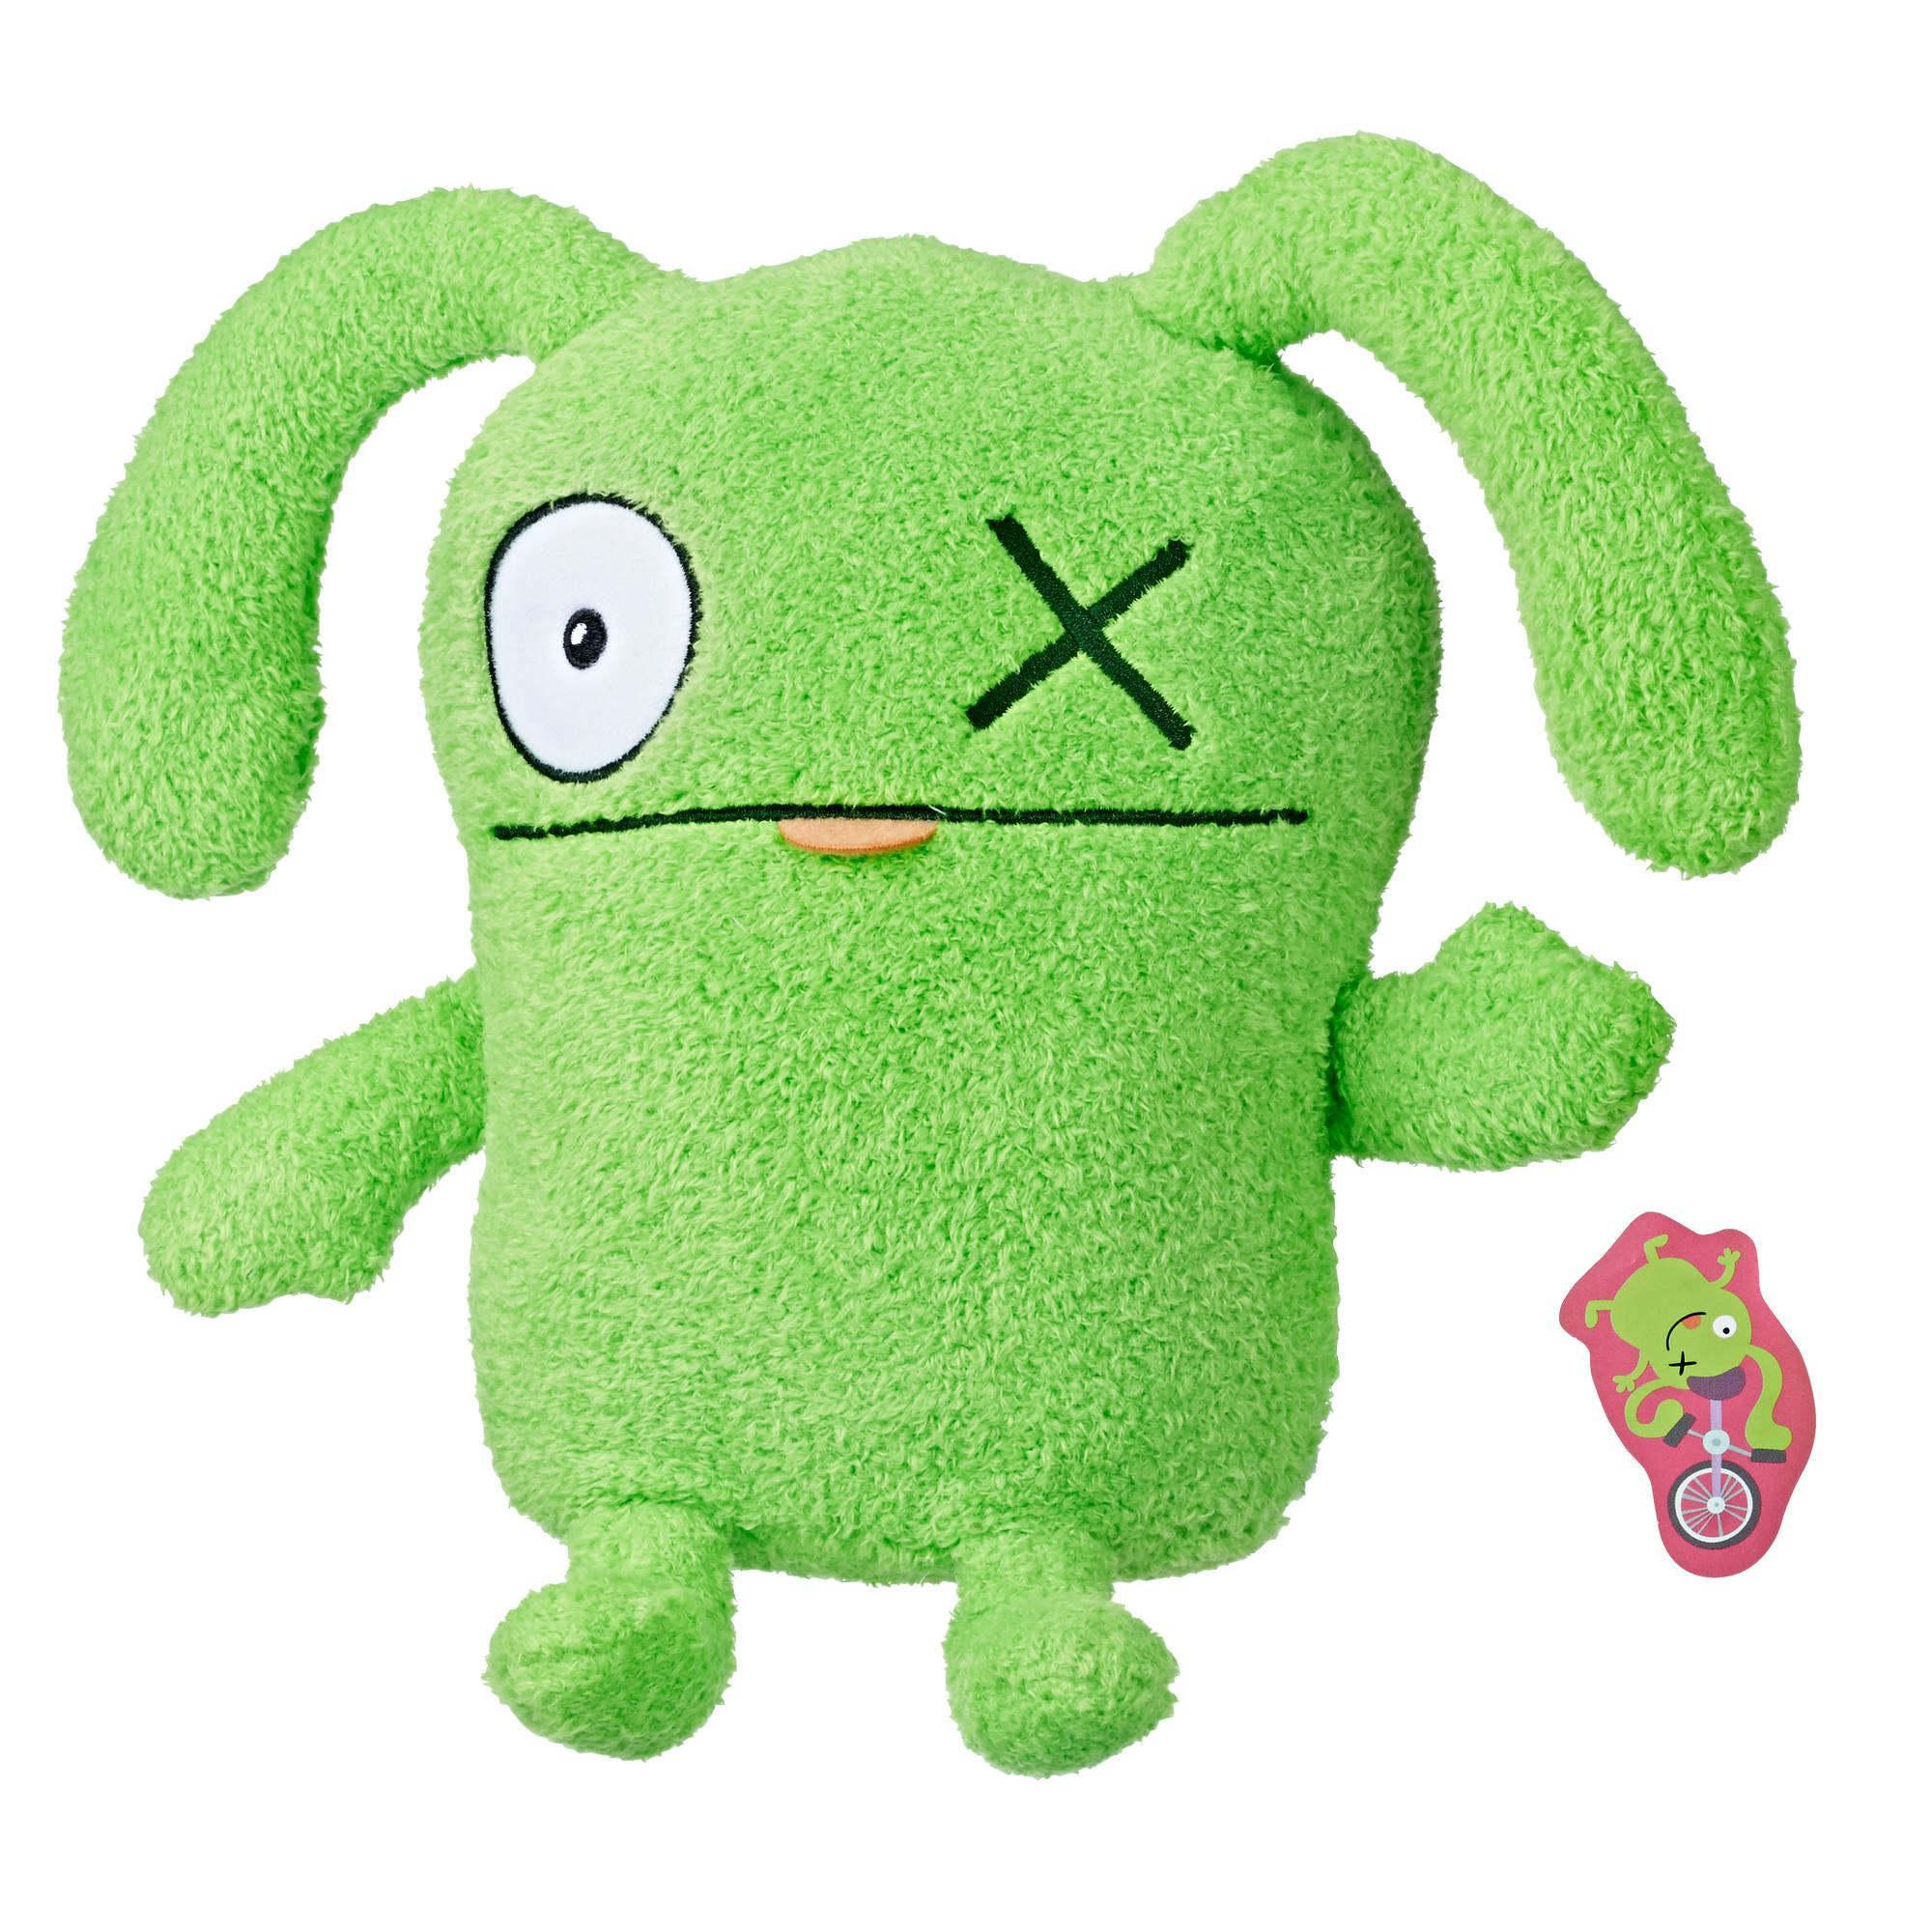 UglyDolls Jokingly Yours OX Stuffed Plush Toy, 23,5 cm. tall